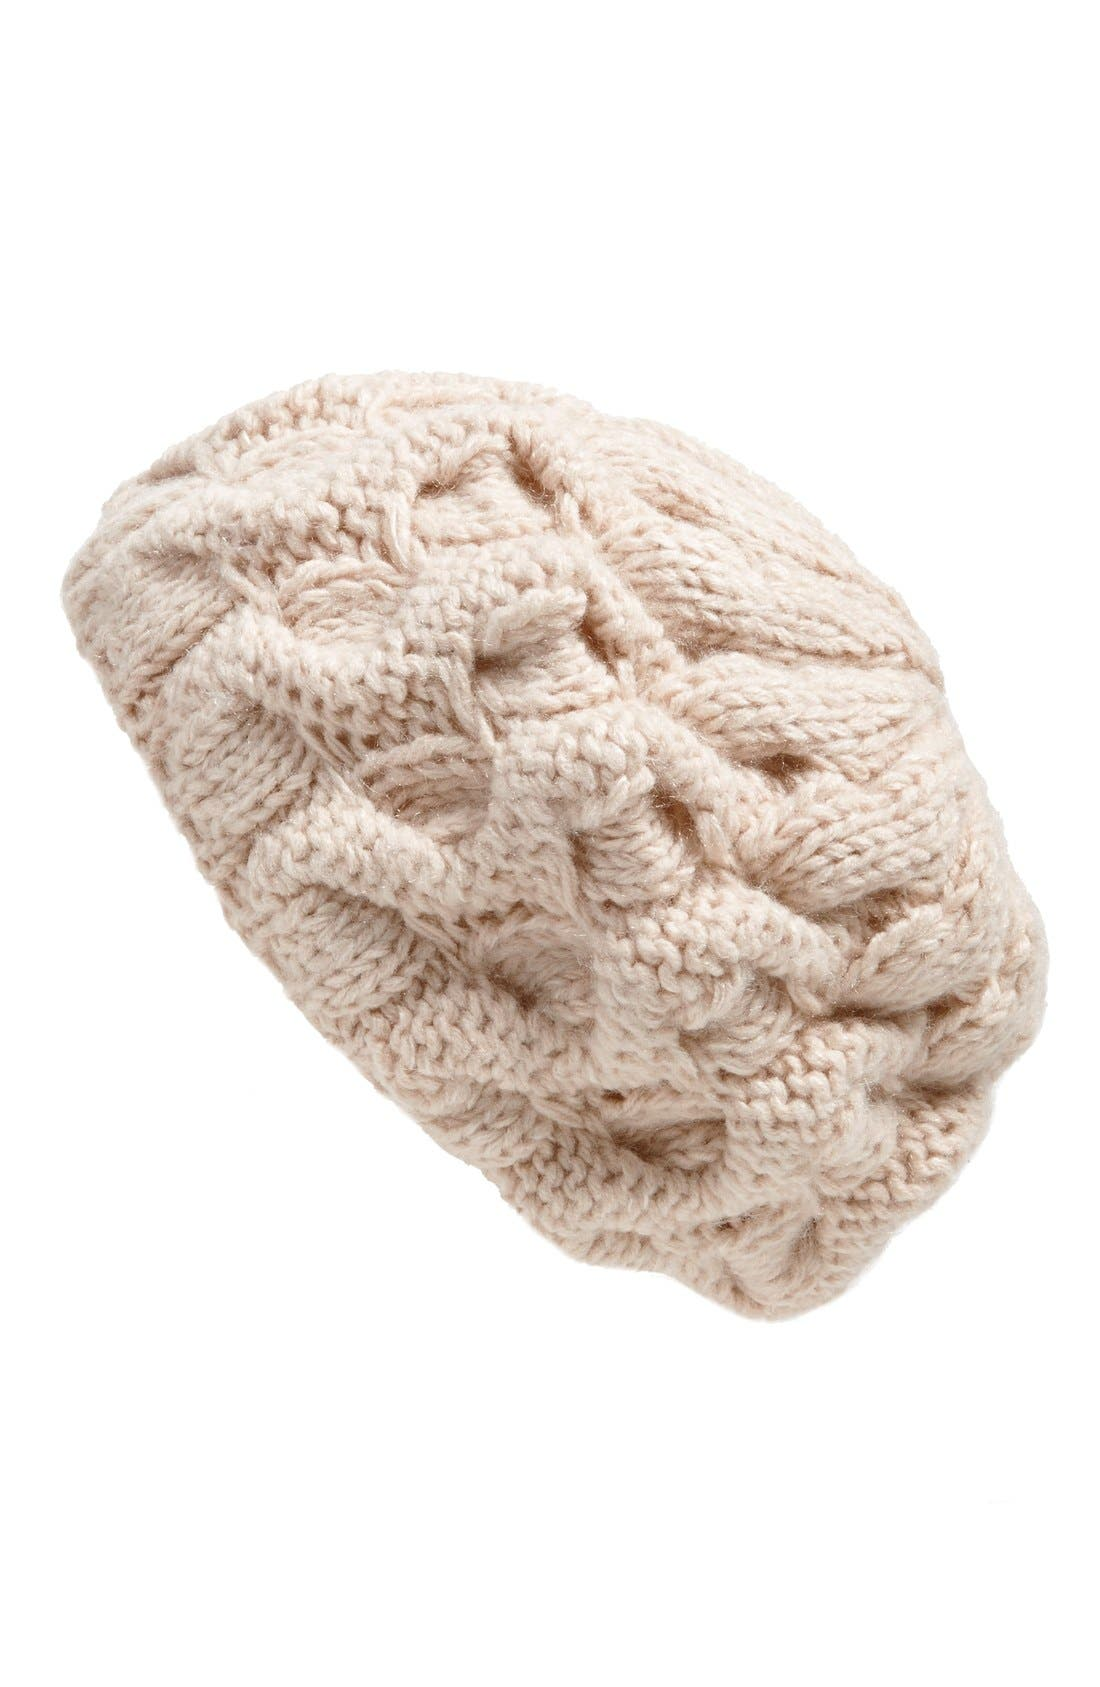 Alternate Image 1 Selected - Free People 'Snow Bird' Chunky Knit Beret